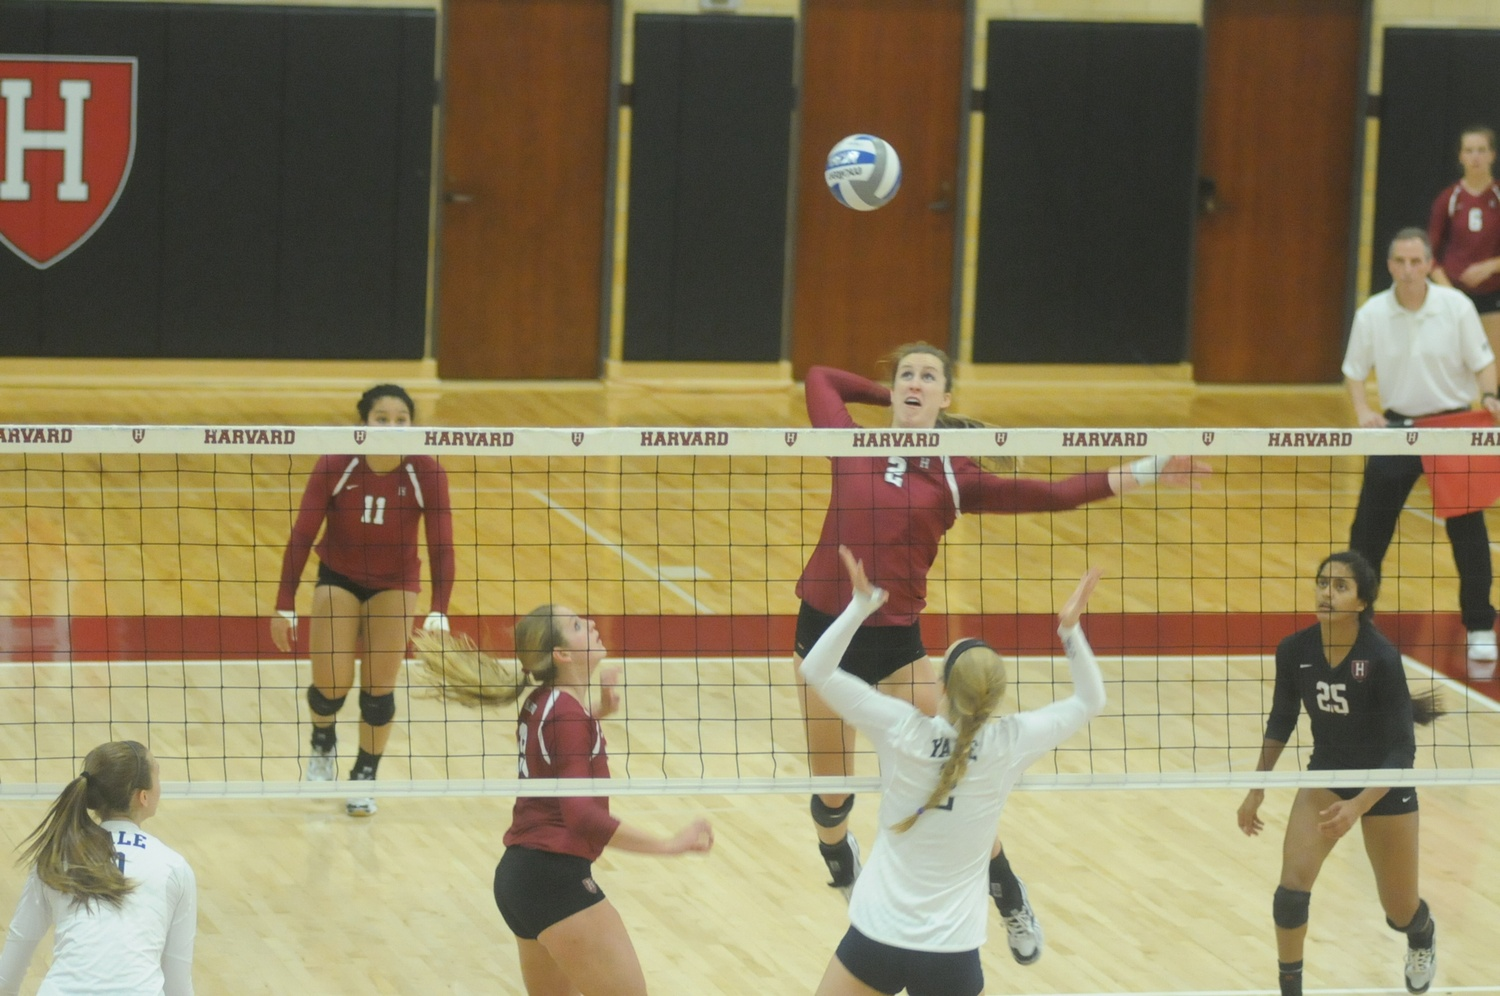 Senior Caroline Holte recorded seven kills in the Harvard women's volleyball team's three-set win over Yale.